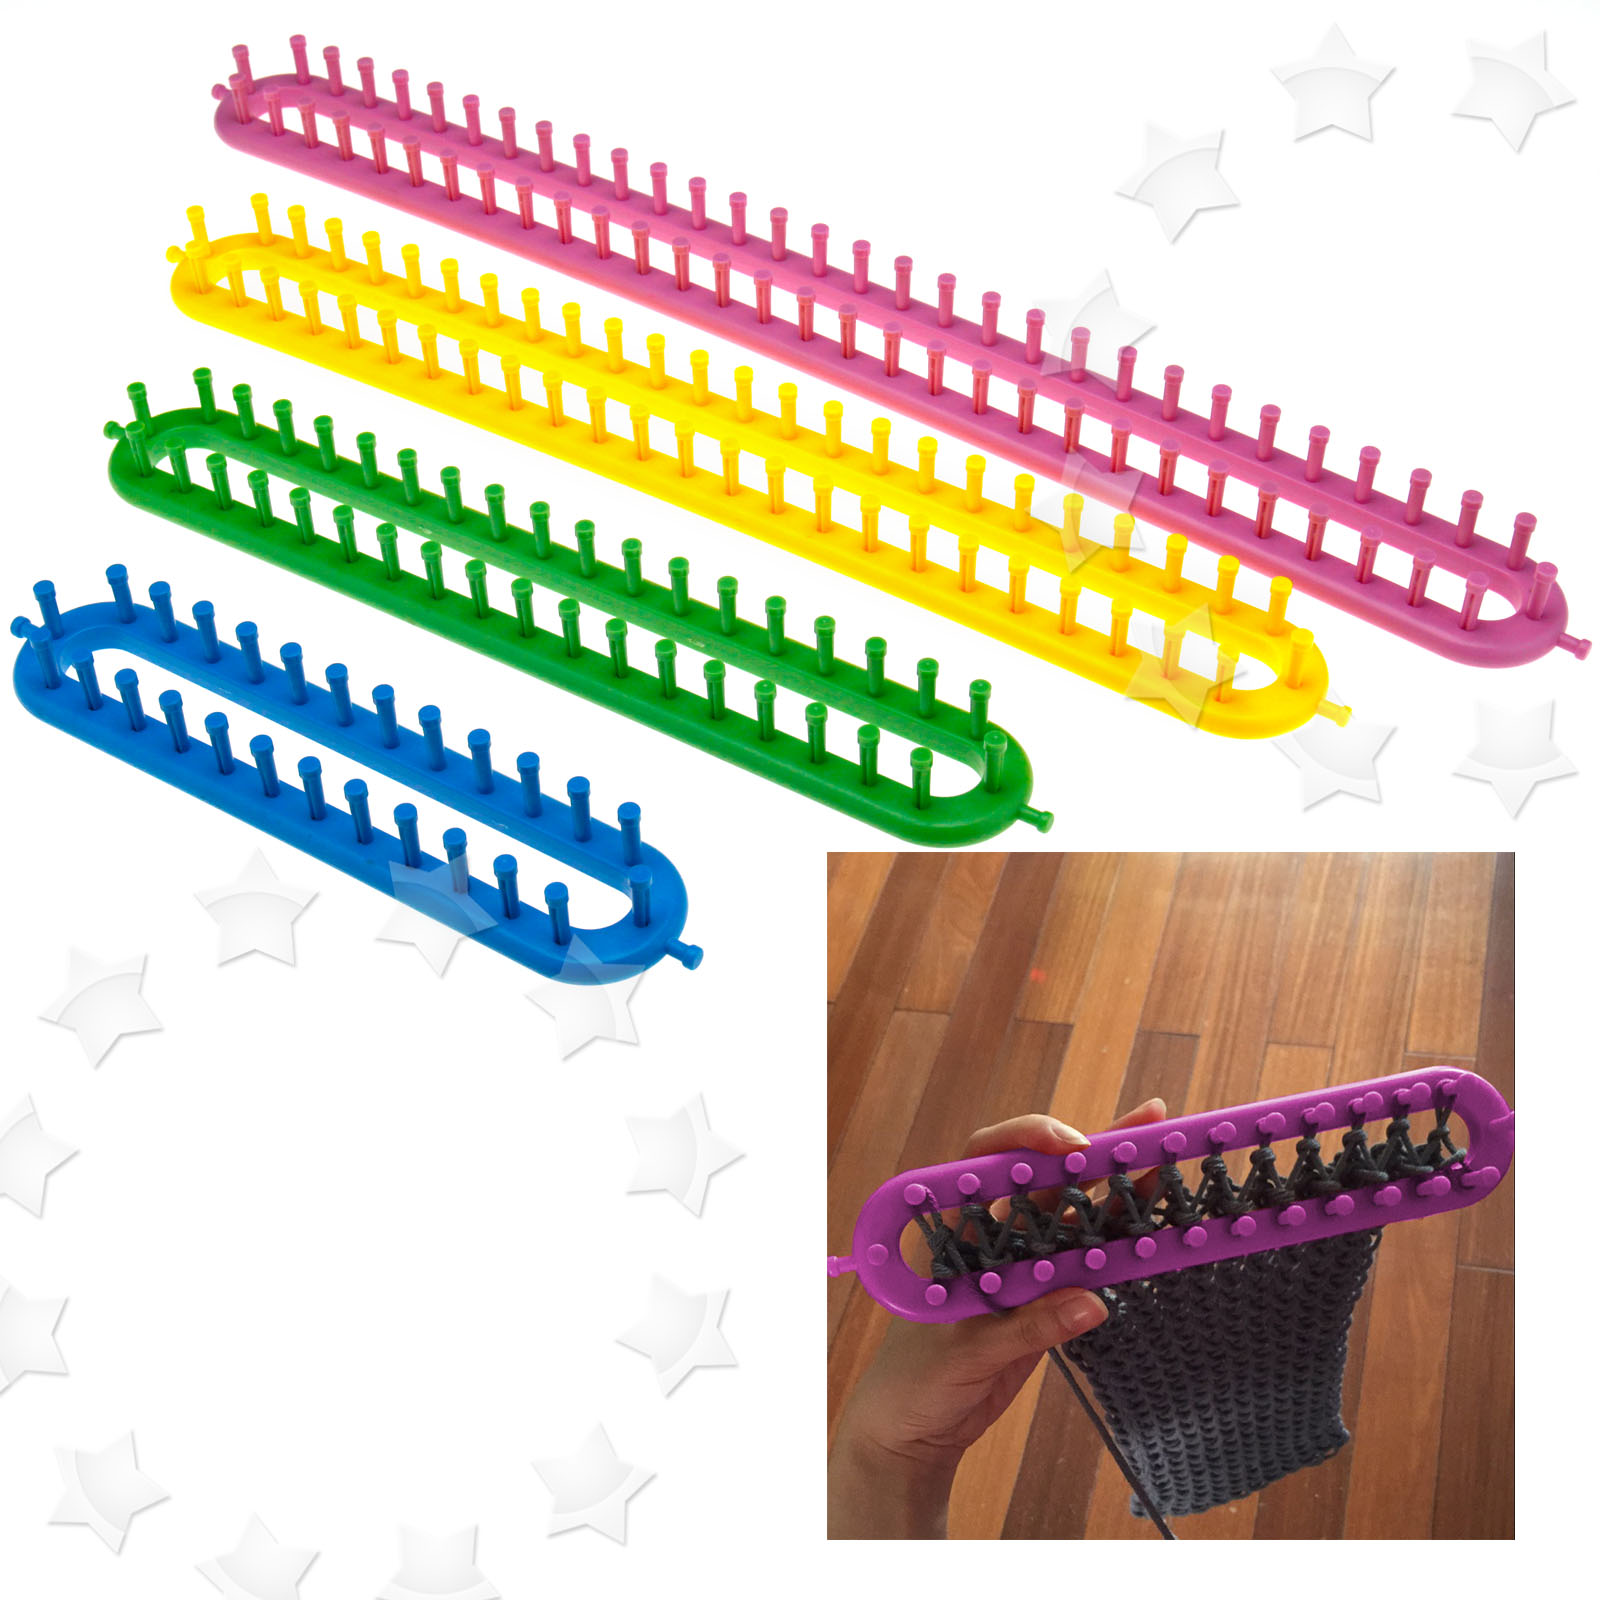 Knitting Loom Pom Pom Maker : New different sizes knitting loom rings with pompom